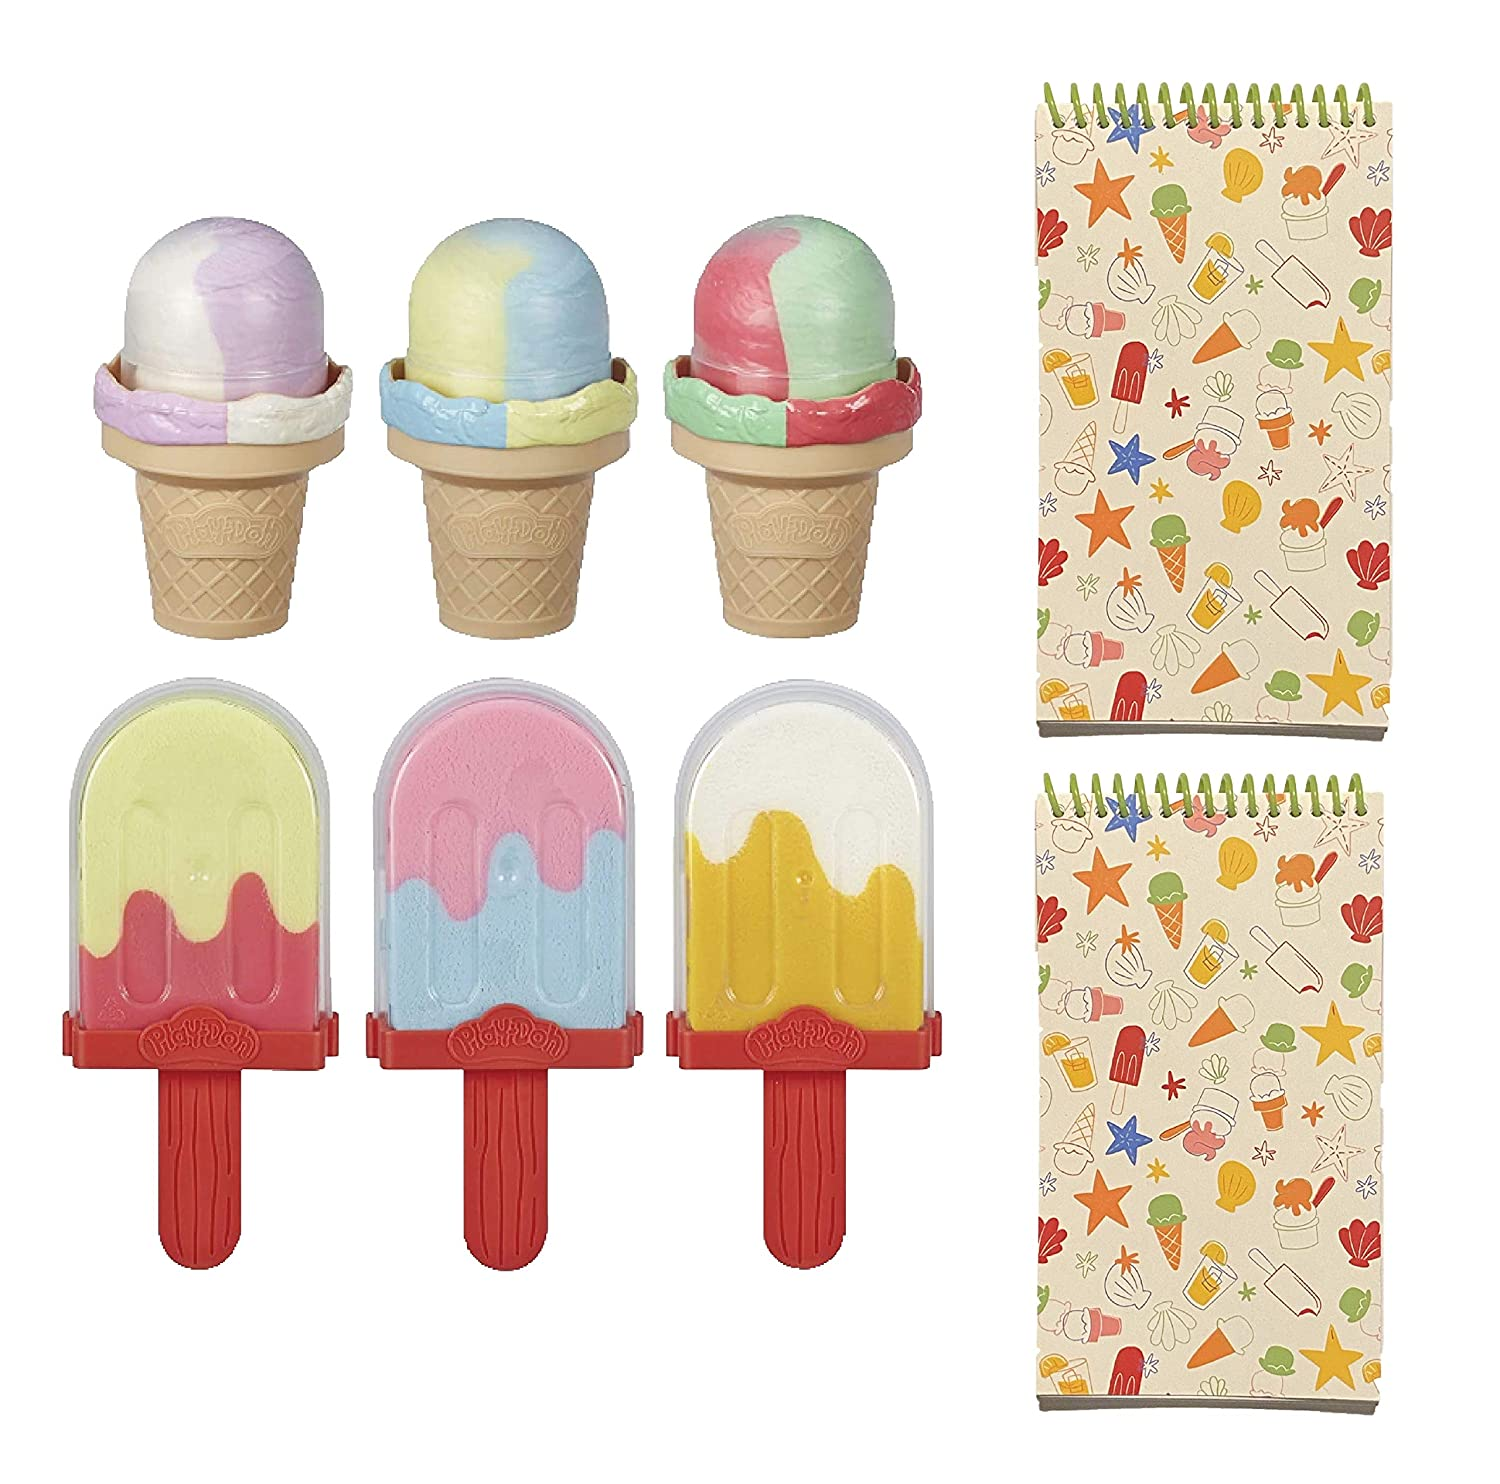 Ice Pops n' Cones Shaped Modeling Compound Bundled with Two Ice Cream Themed Notepads (Total 8 Items)